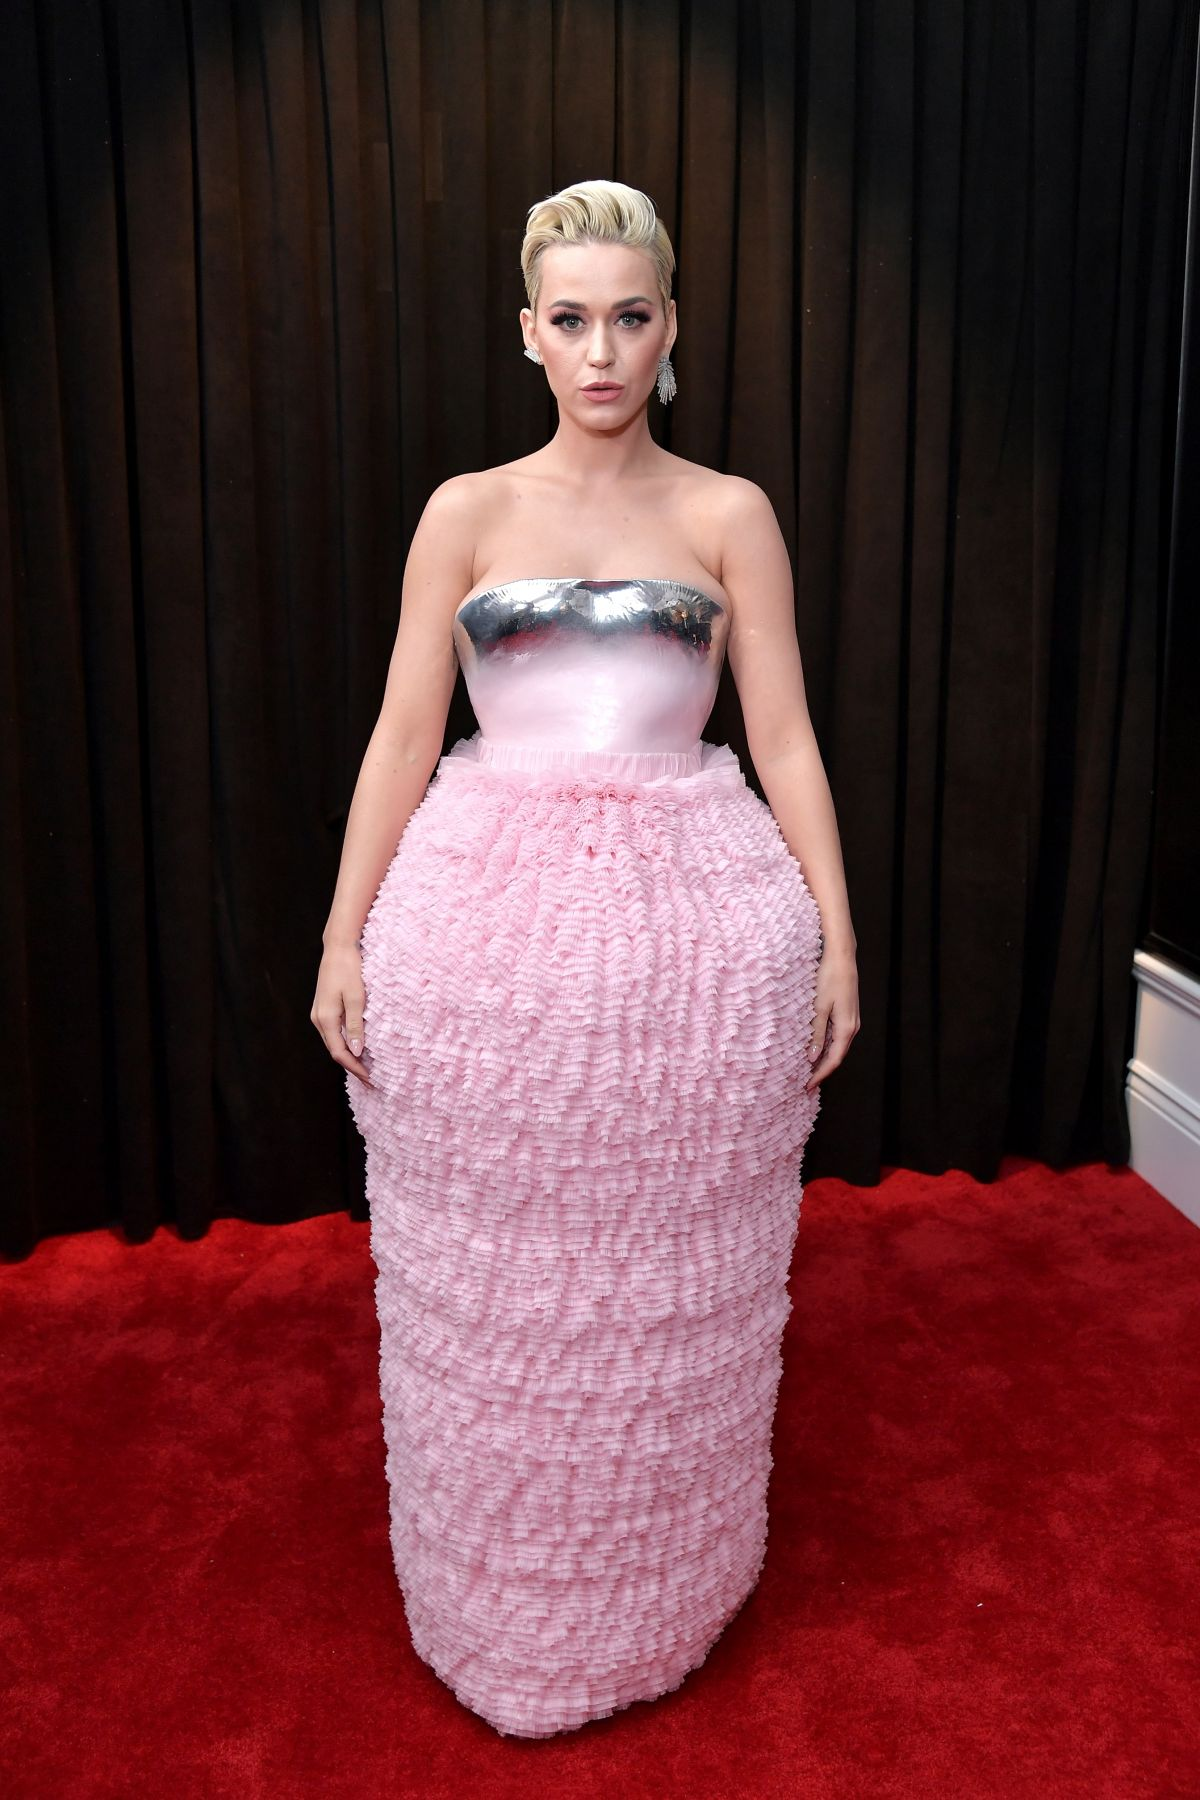 katy-perry-at-61st-annual-grammy-awards-